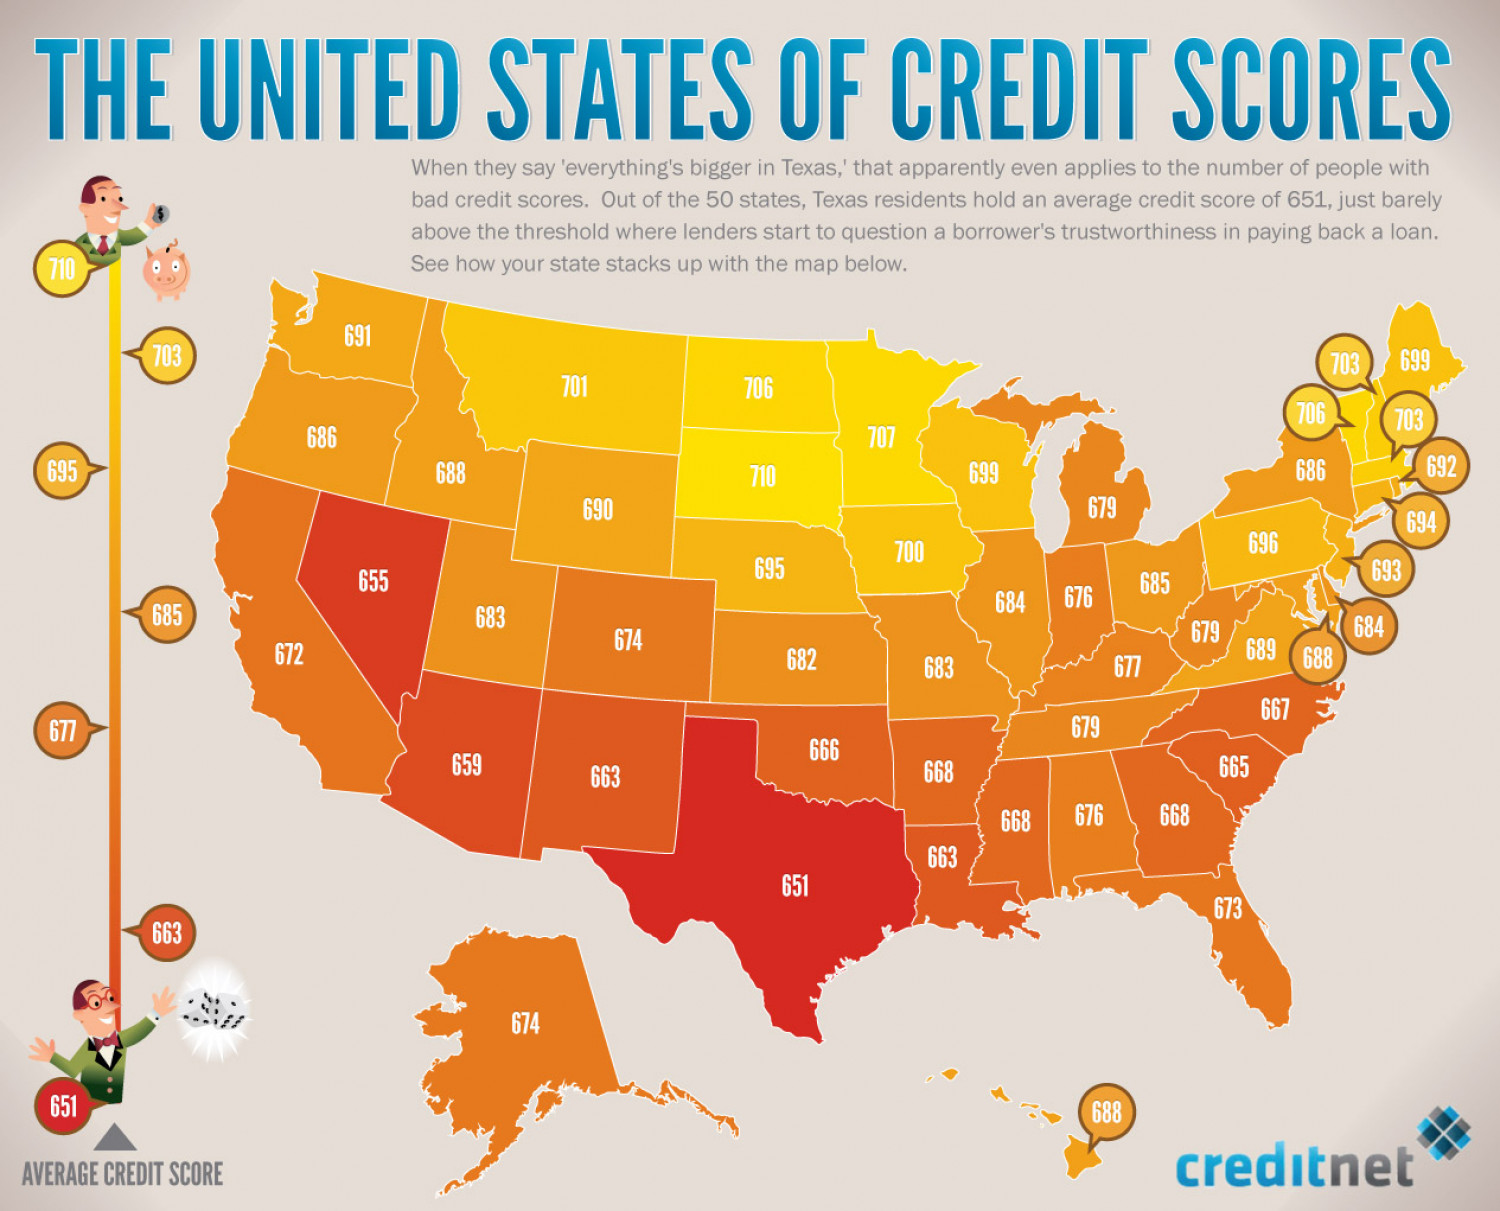 The United States of Credit Scores Infographic